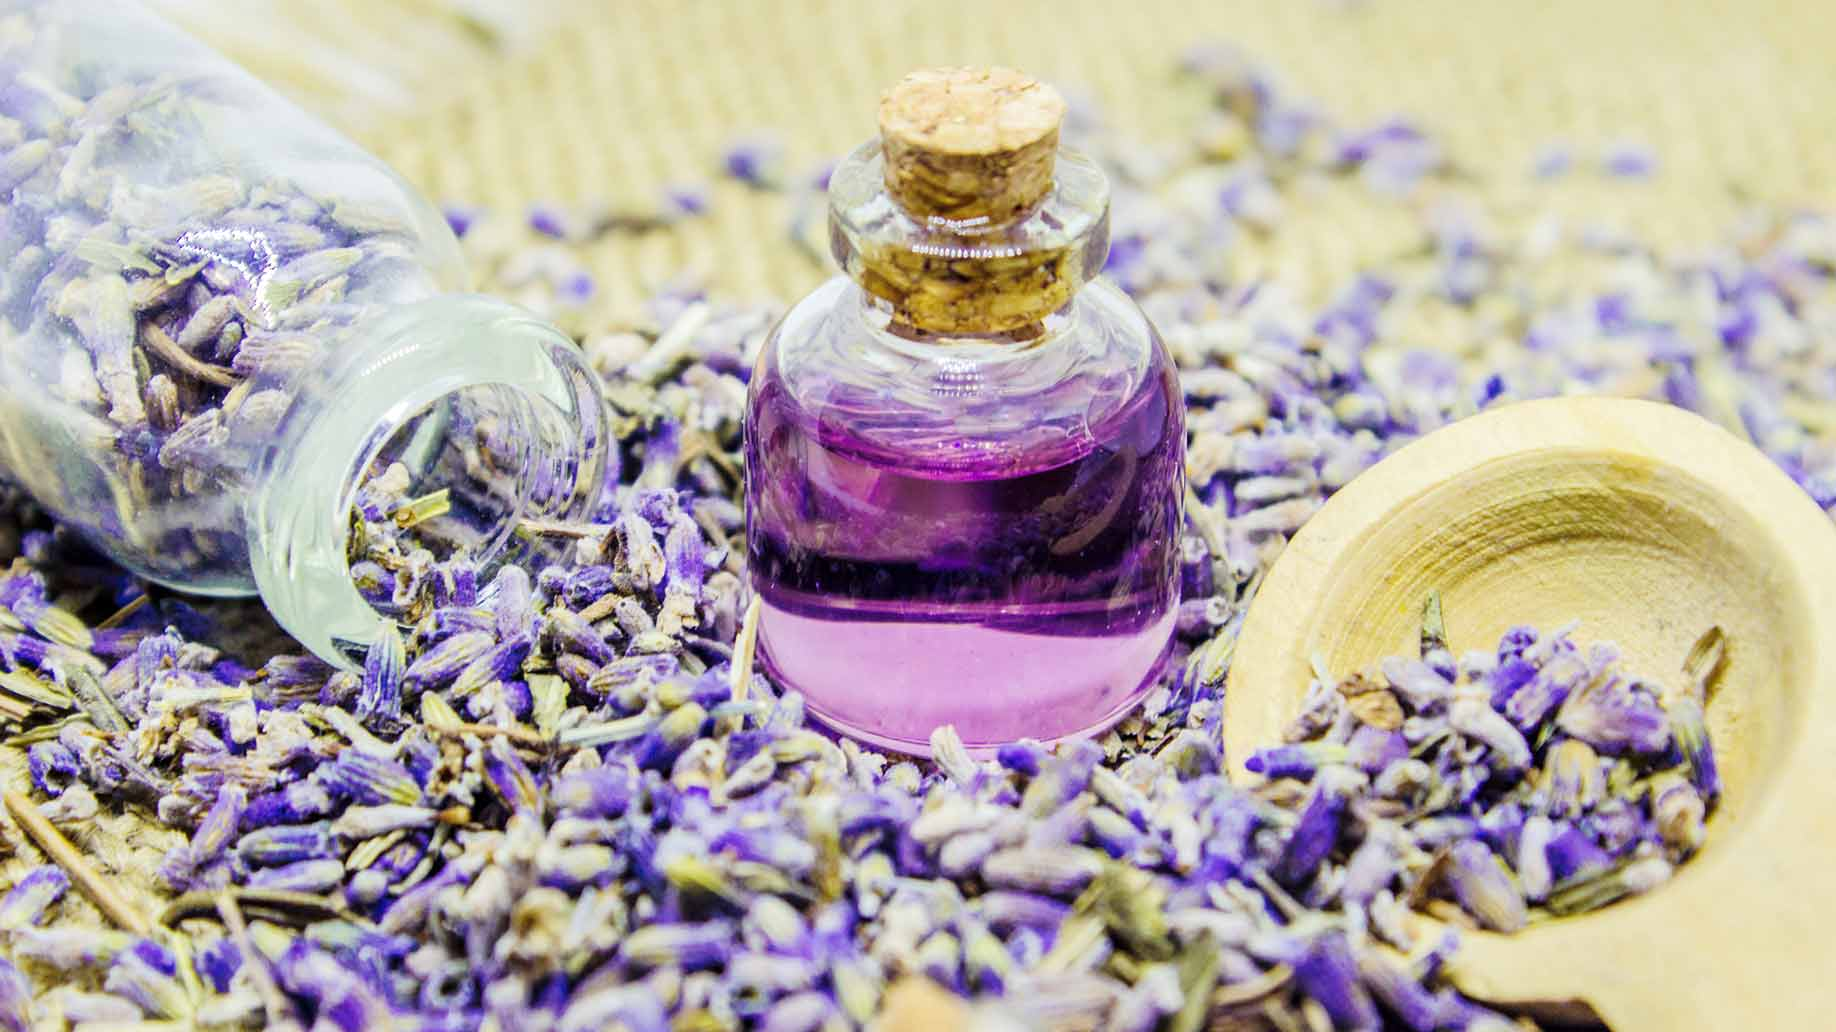 lavender essential oil natural health benefits anxiety insomnia period pain